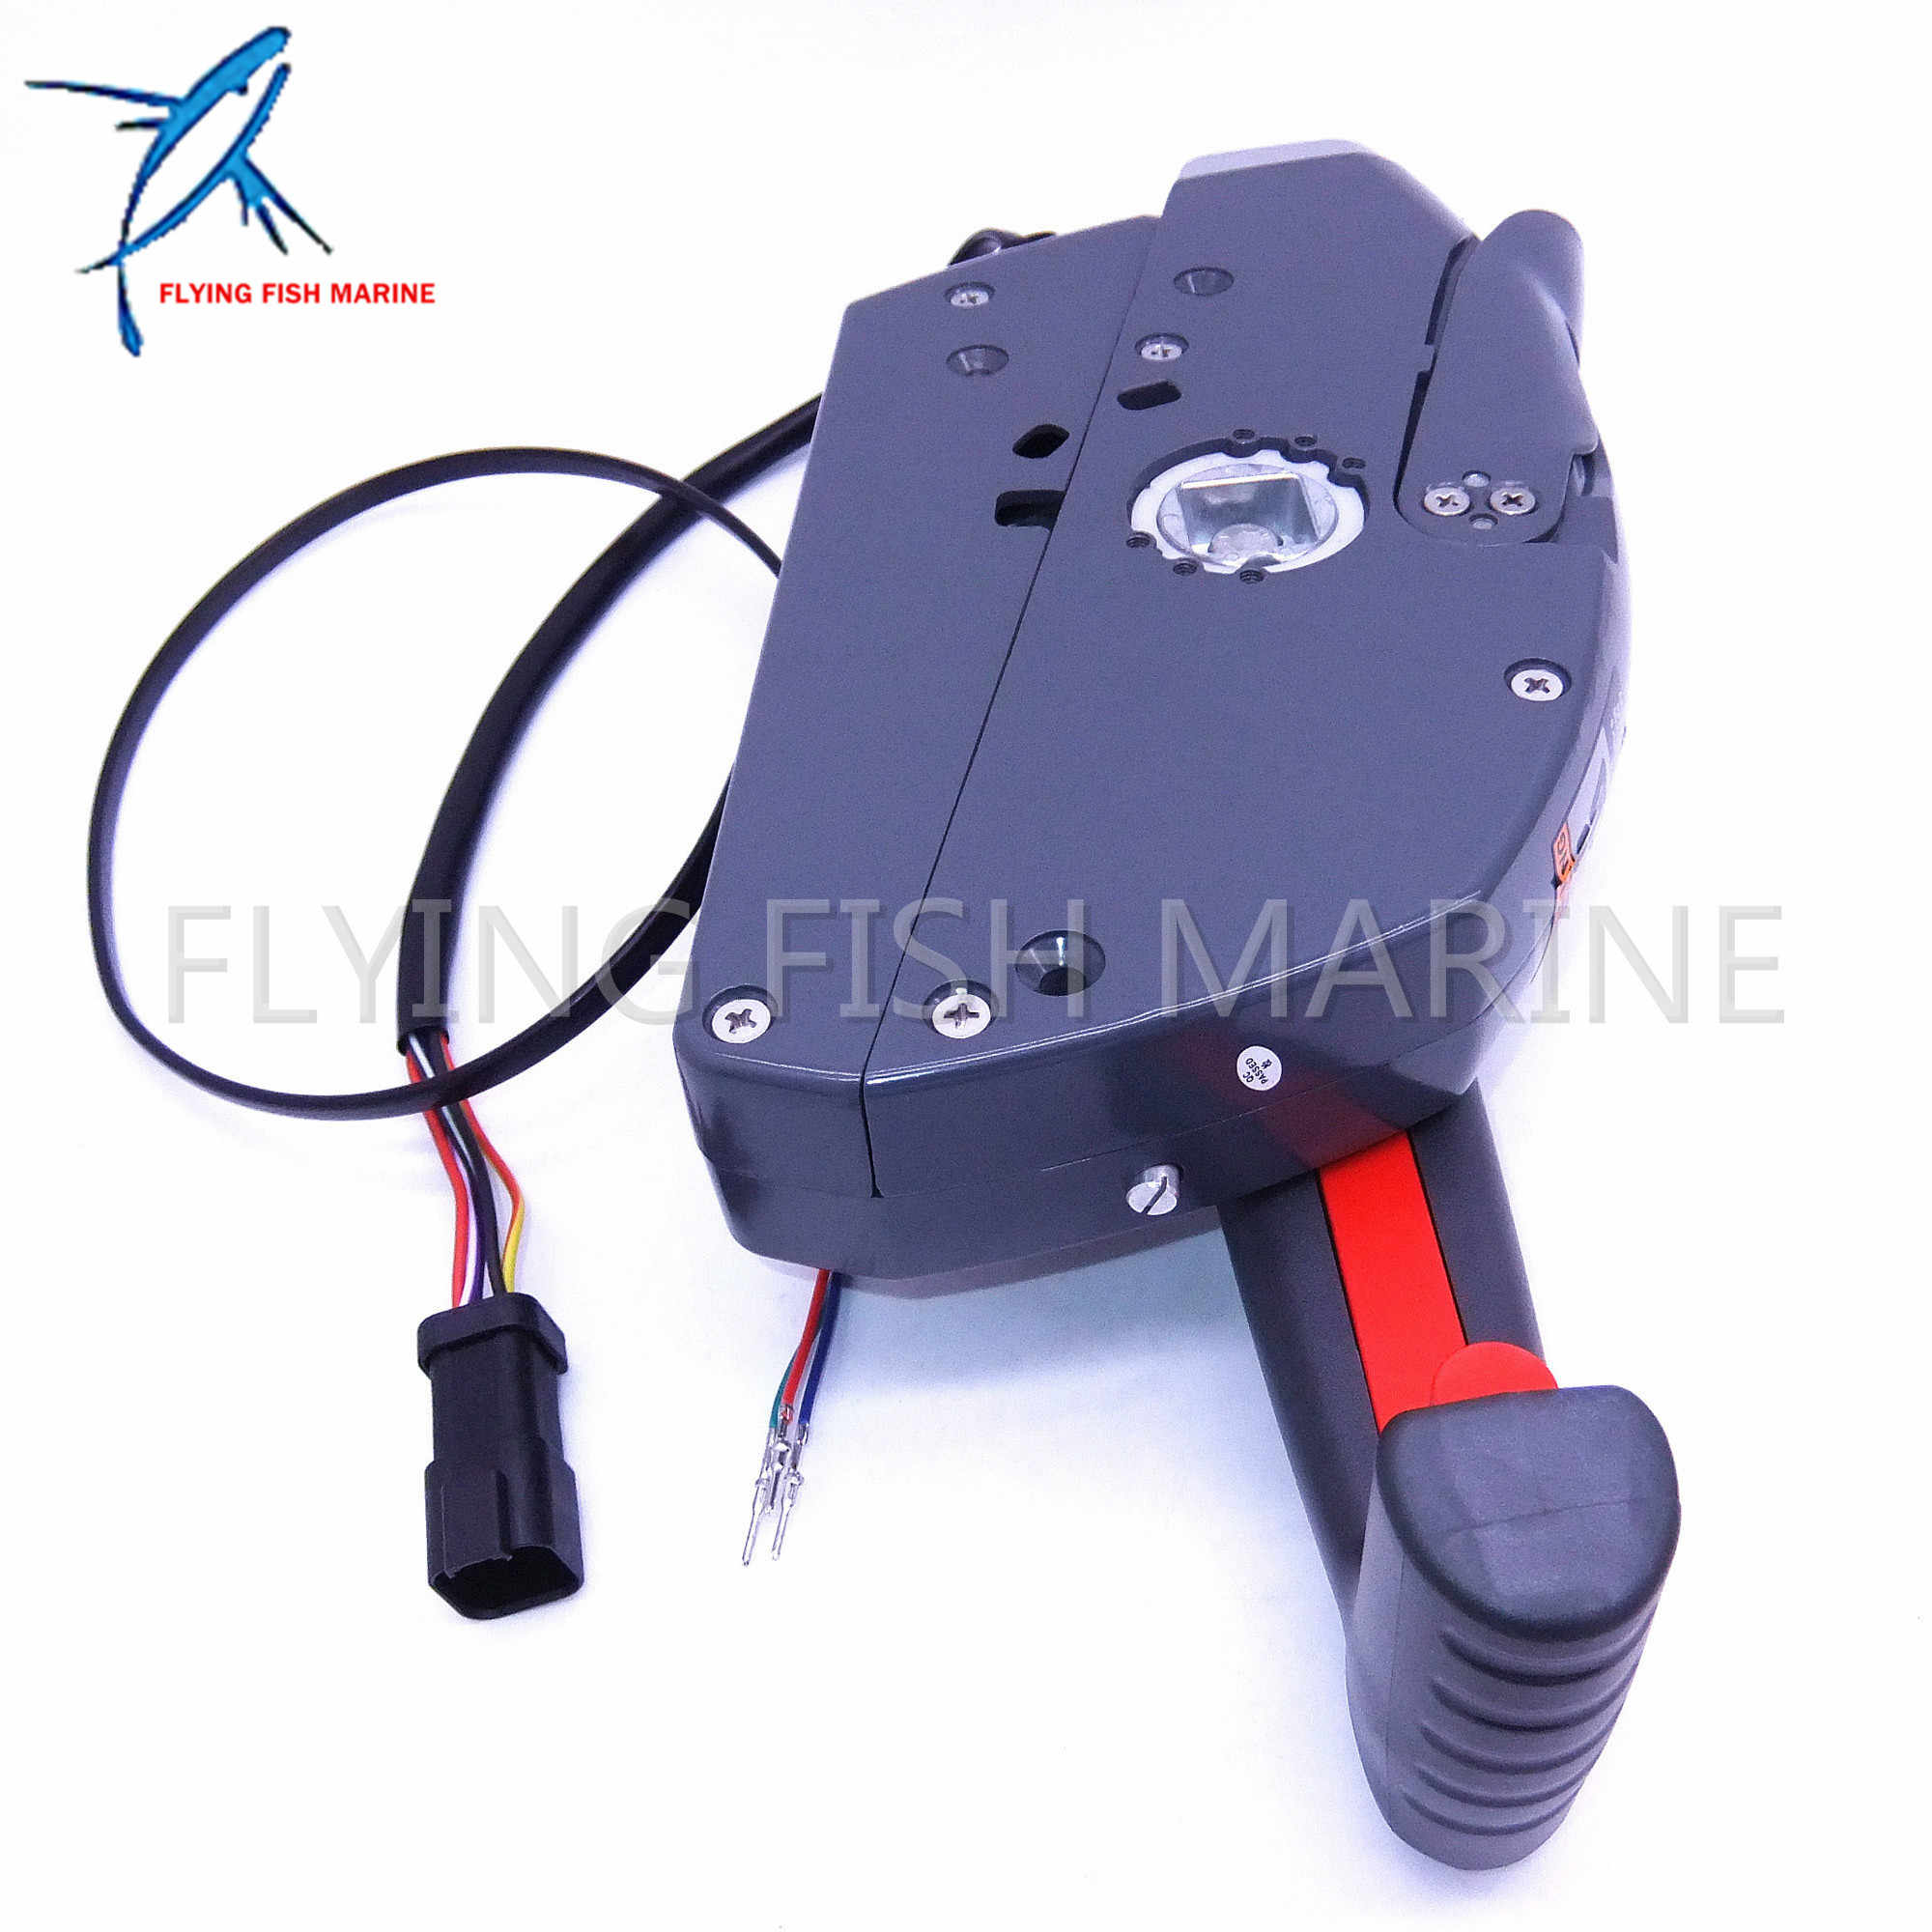 bb5a5bf5f3838 ... 5006180 Boat Motor Side Mount Remote Control Box for Johnson Evinrude  OMC BRP Outboard Engine ...